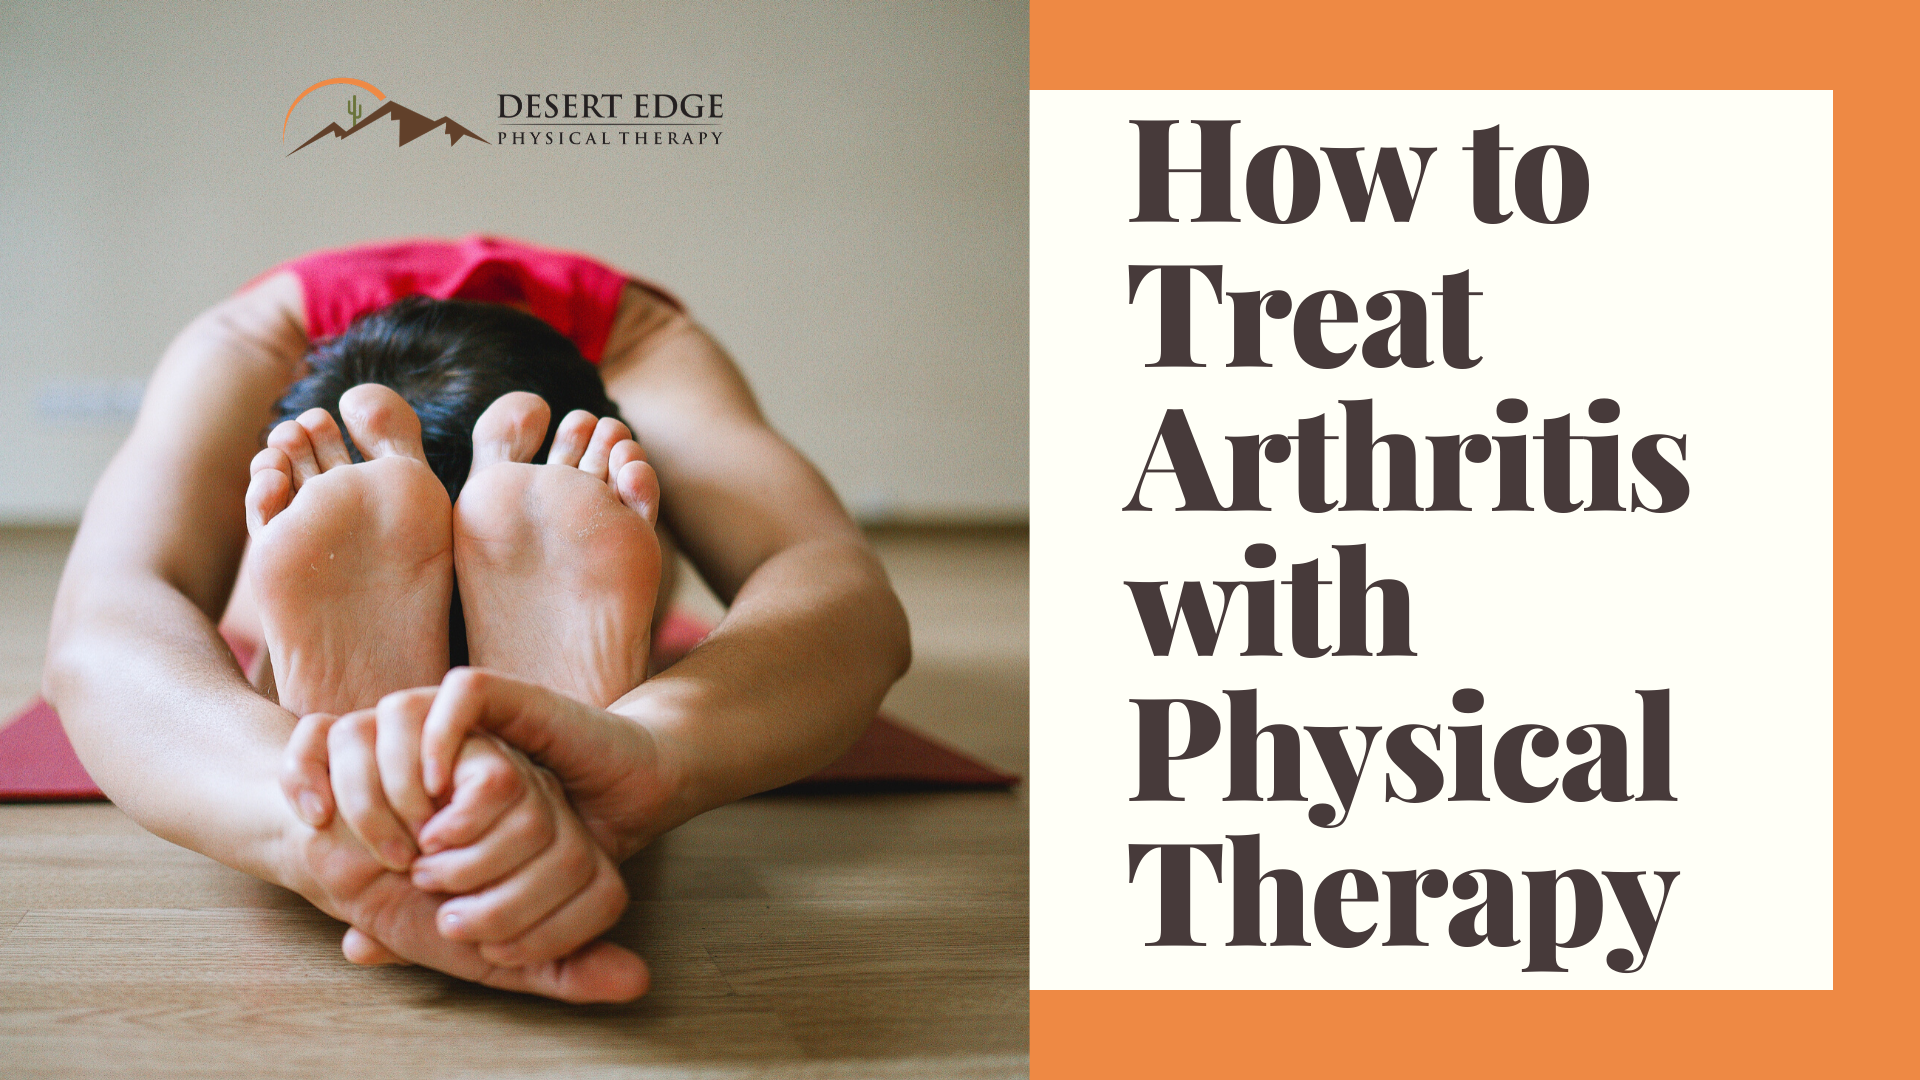 How to Treat Arthritis with Physical Therapy